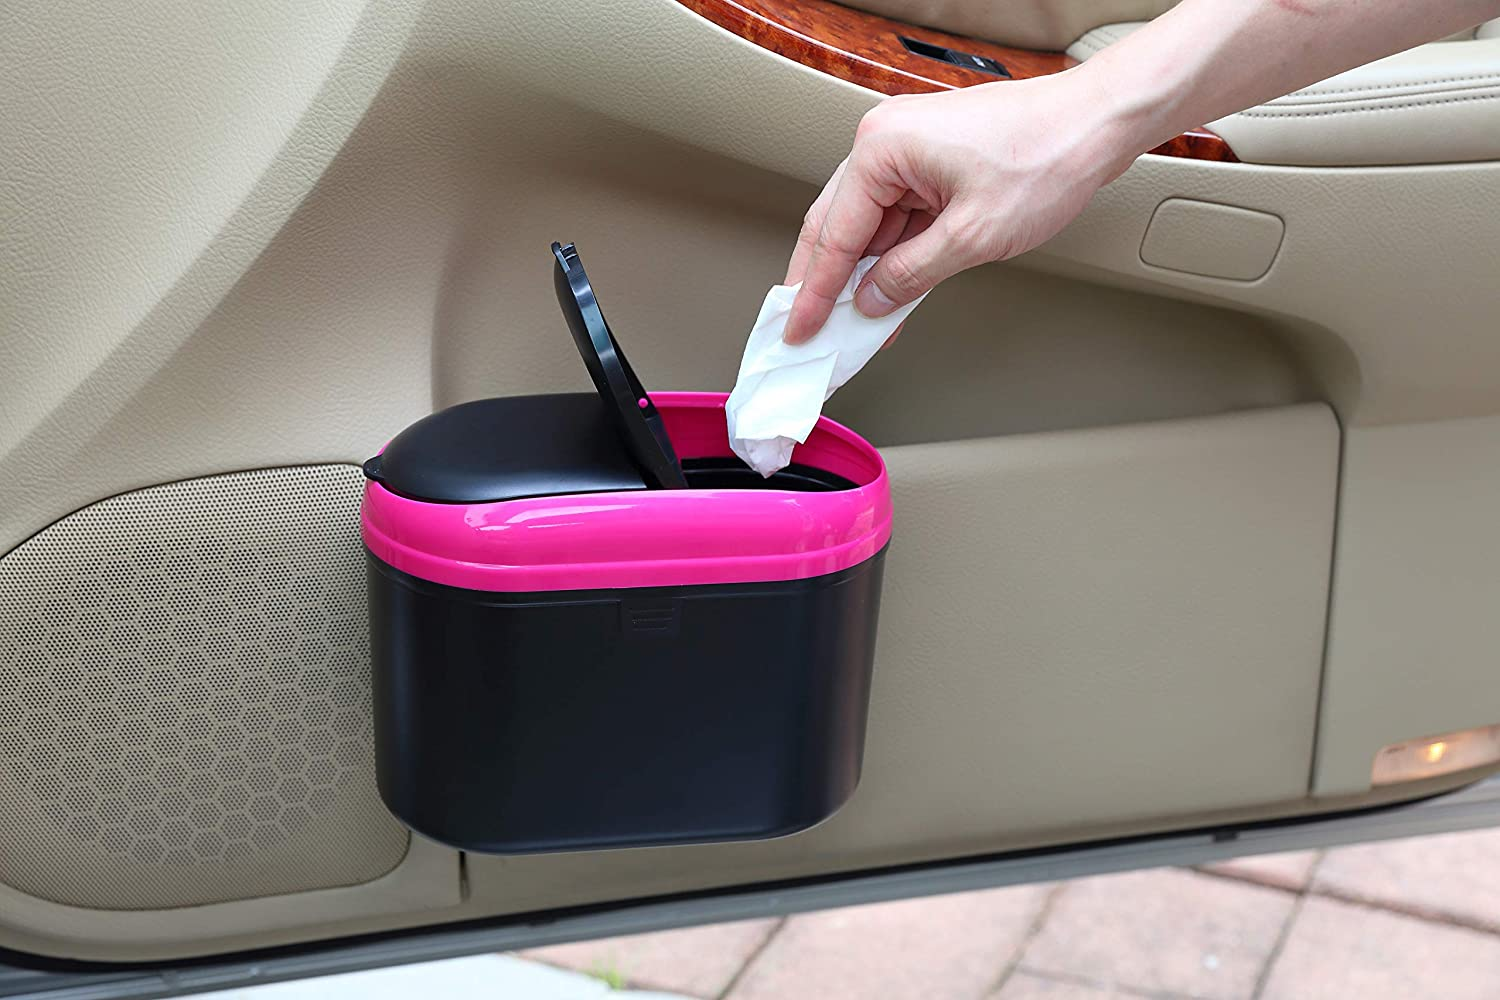 Pink YBM HOME Mini Car Trash Can with Double Cover 0.8L Auto Garbage Bin Hanging Wastebasket for Getting Rid of Waste On The Go